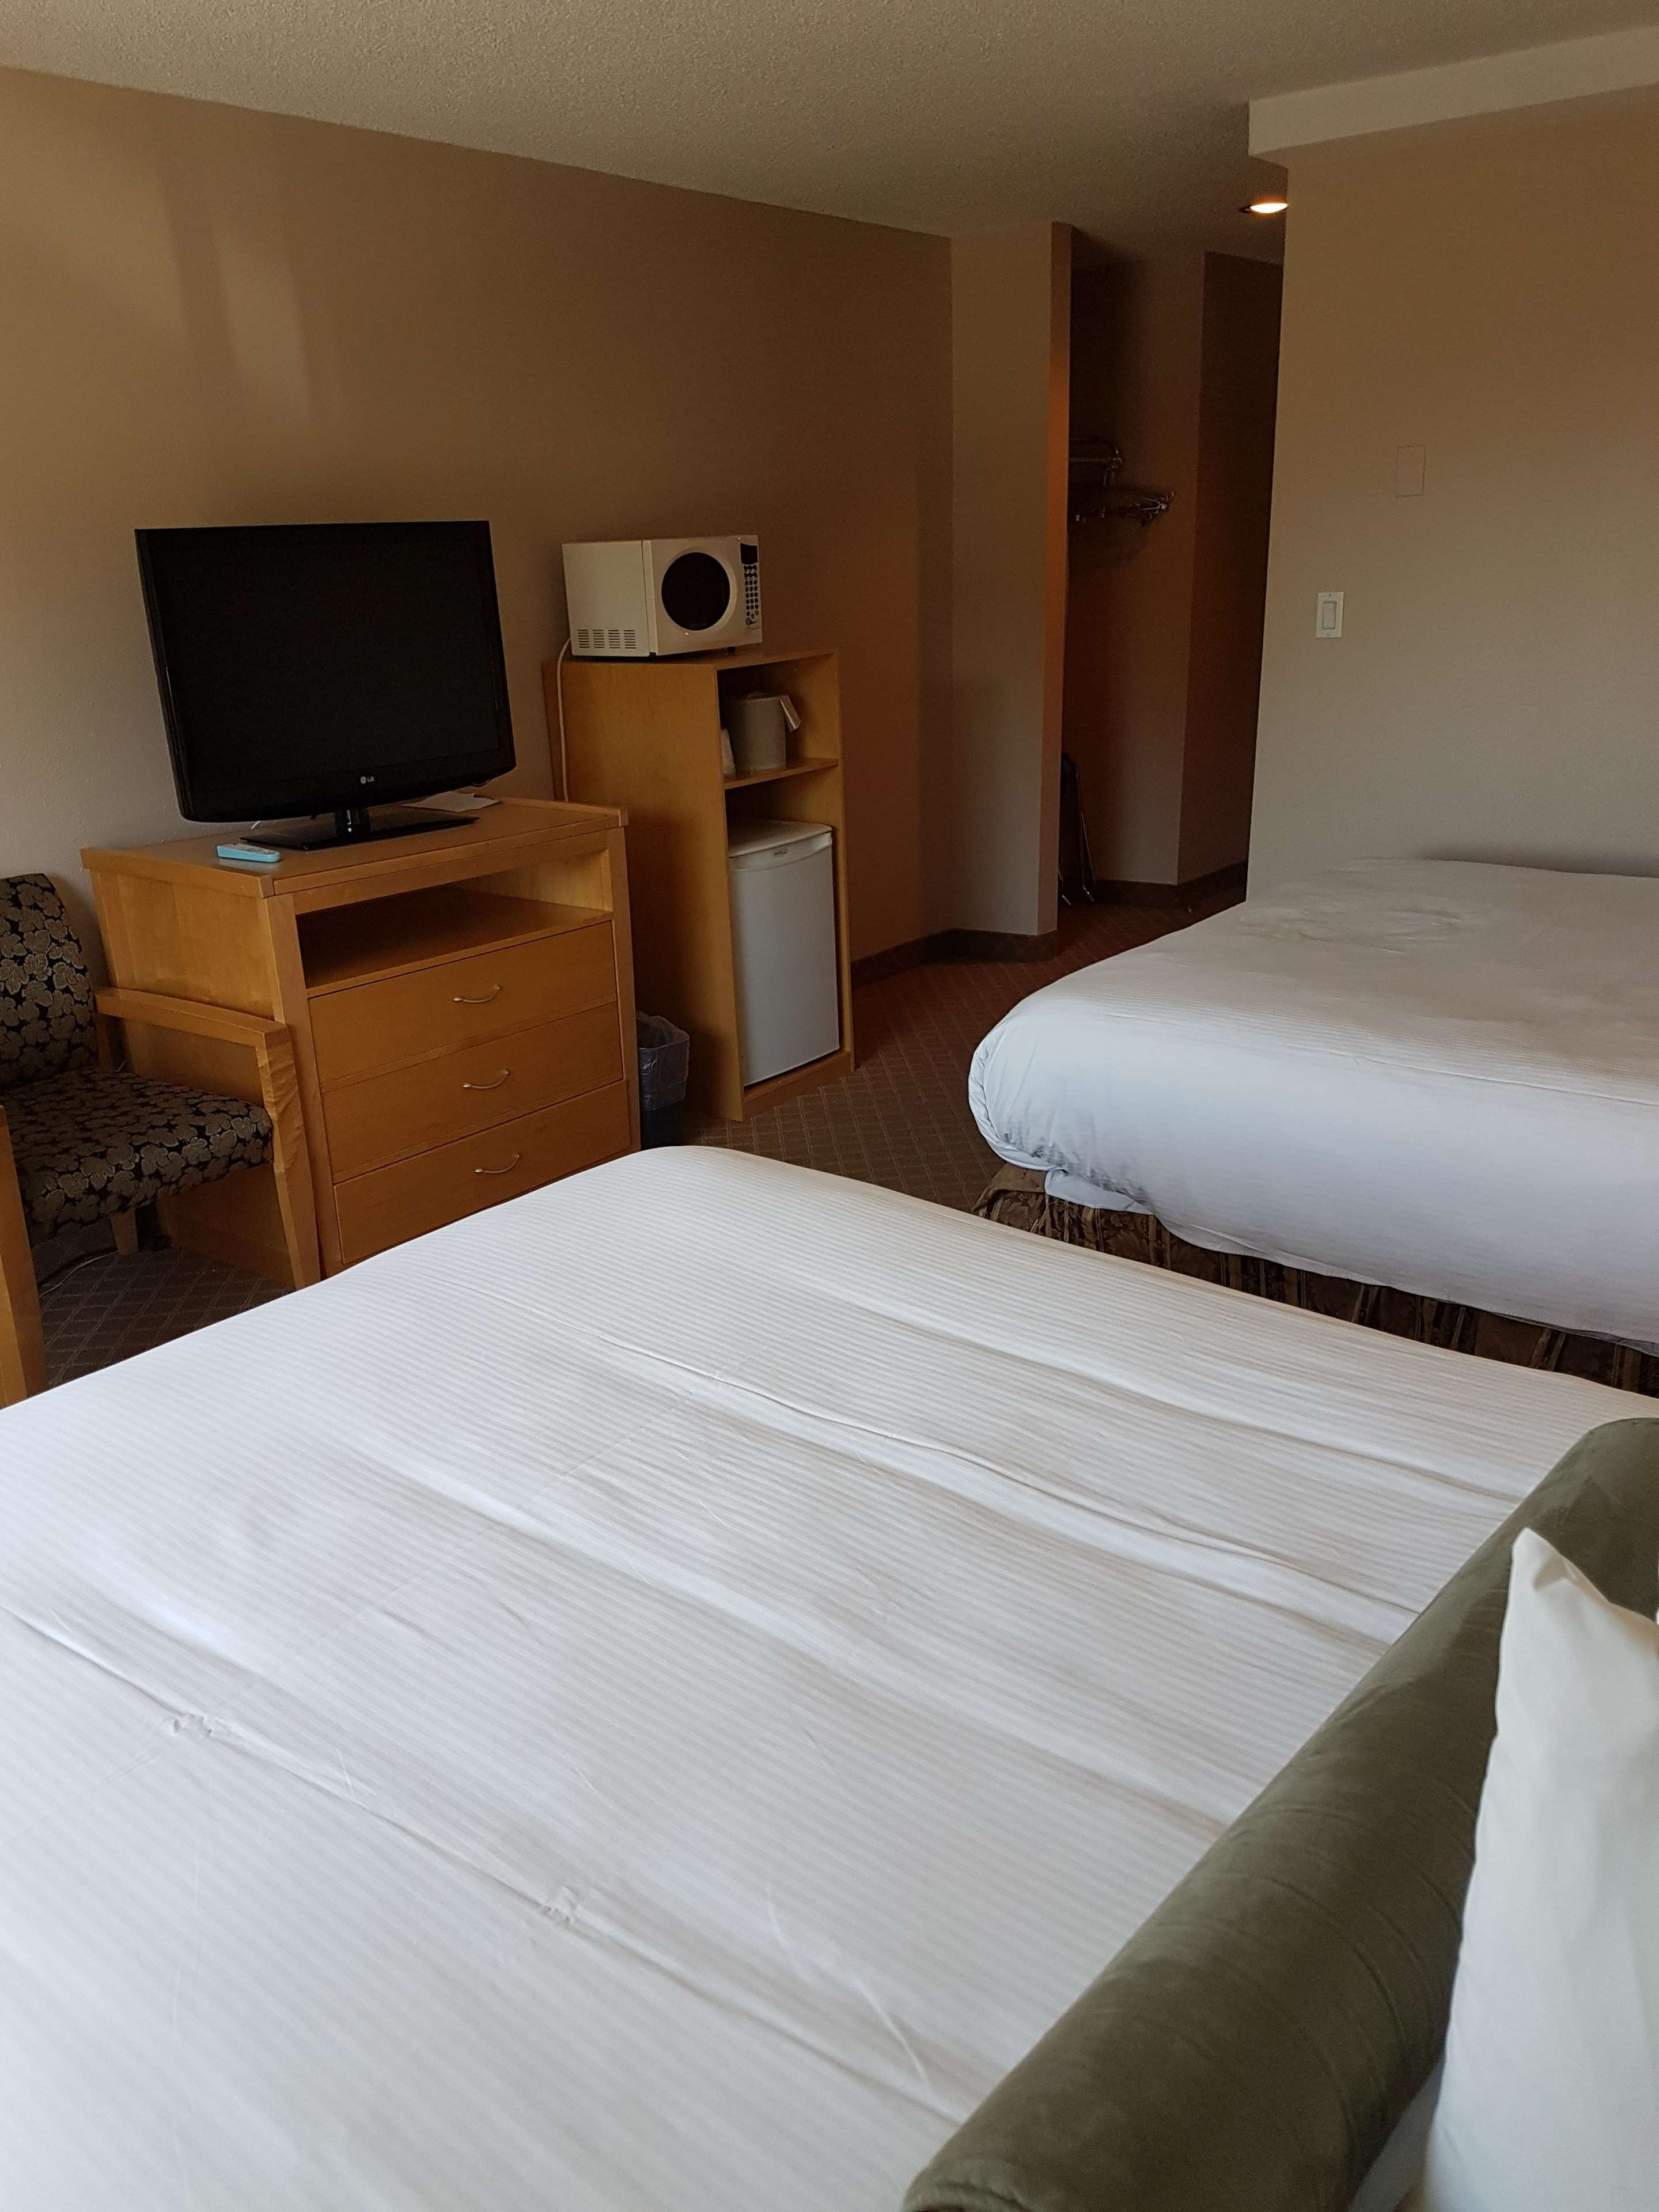 SureStay Plus Hotel by Best Western Coquitlam in Coquitlam: 2 Queens